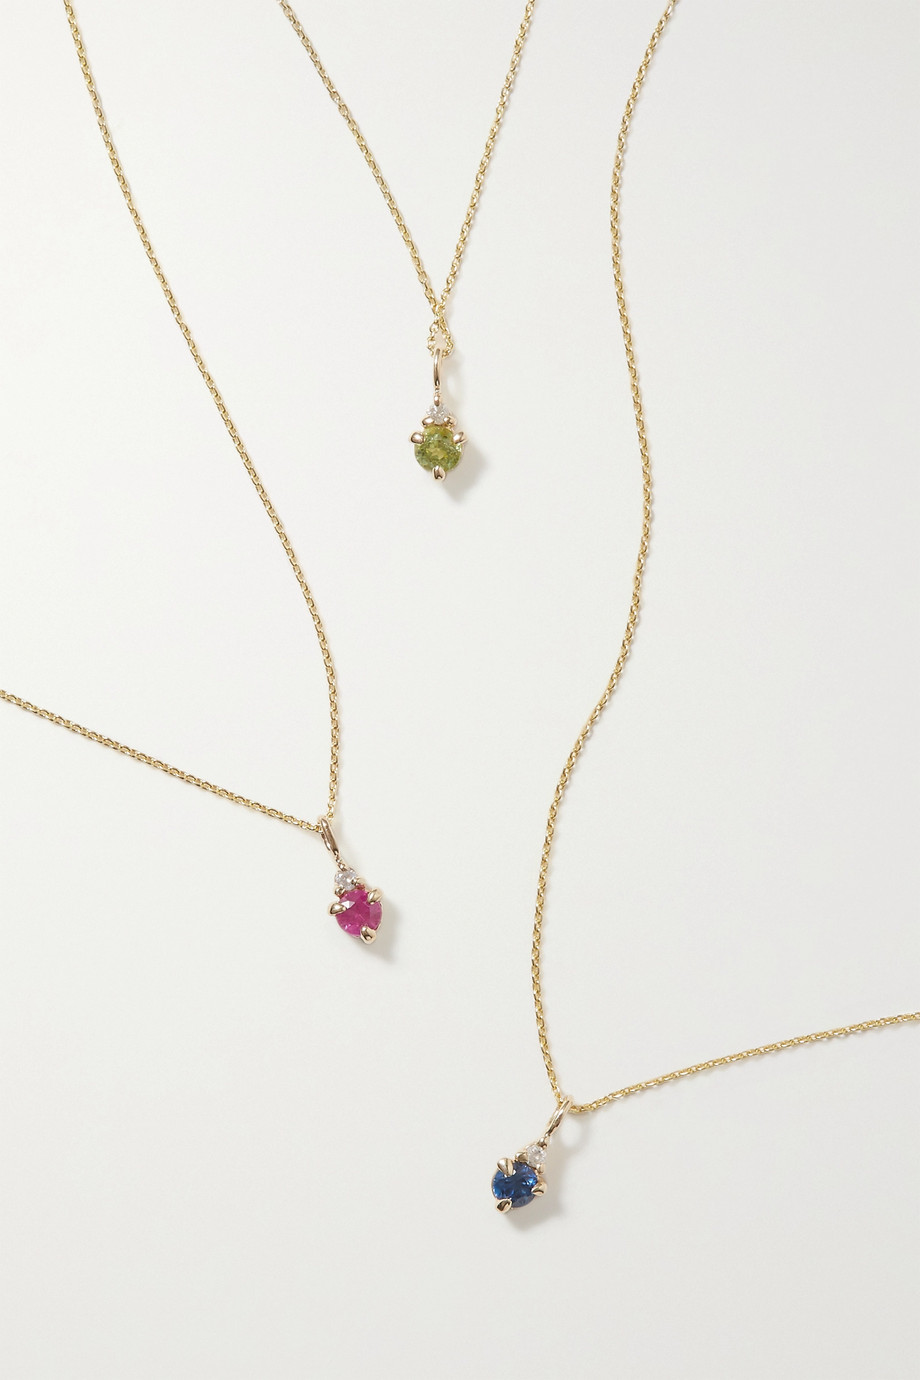 STONE AND STRAND Birthstone 黄金多种宝石项链